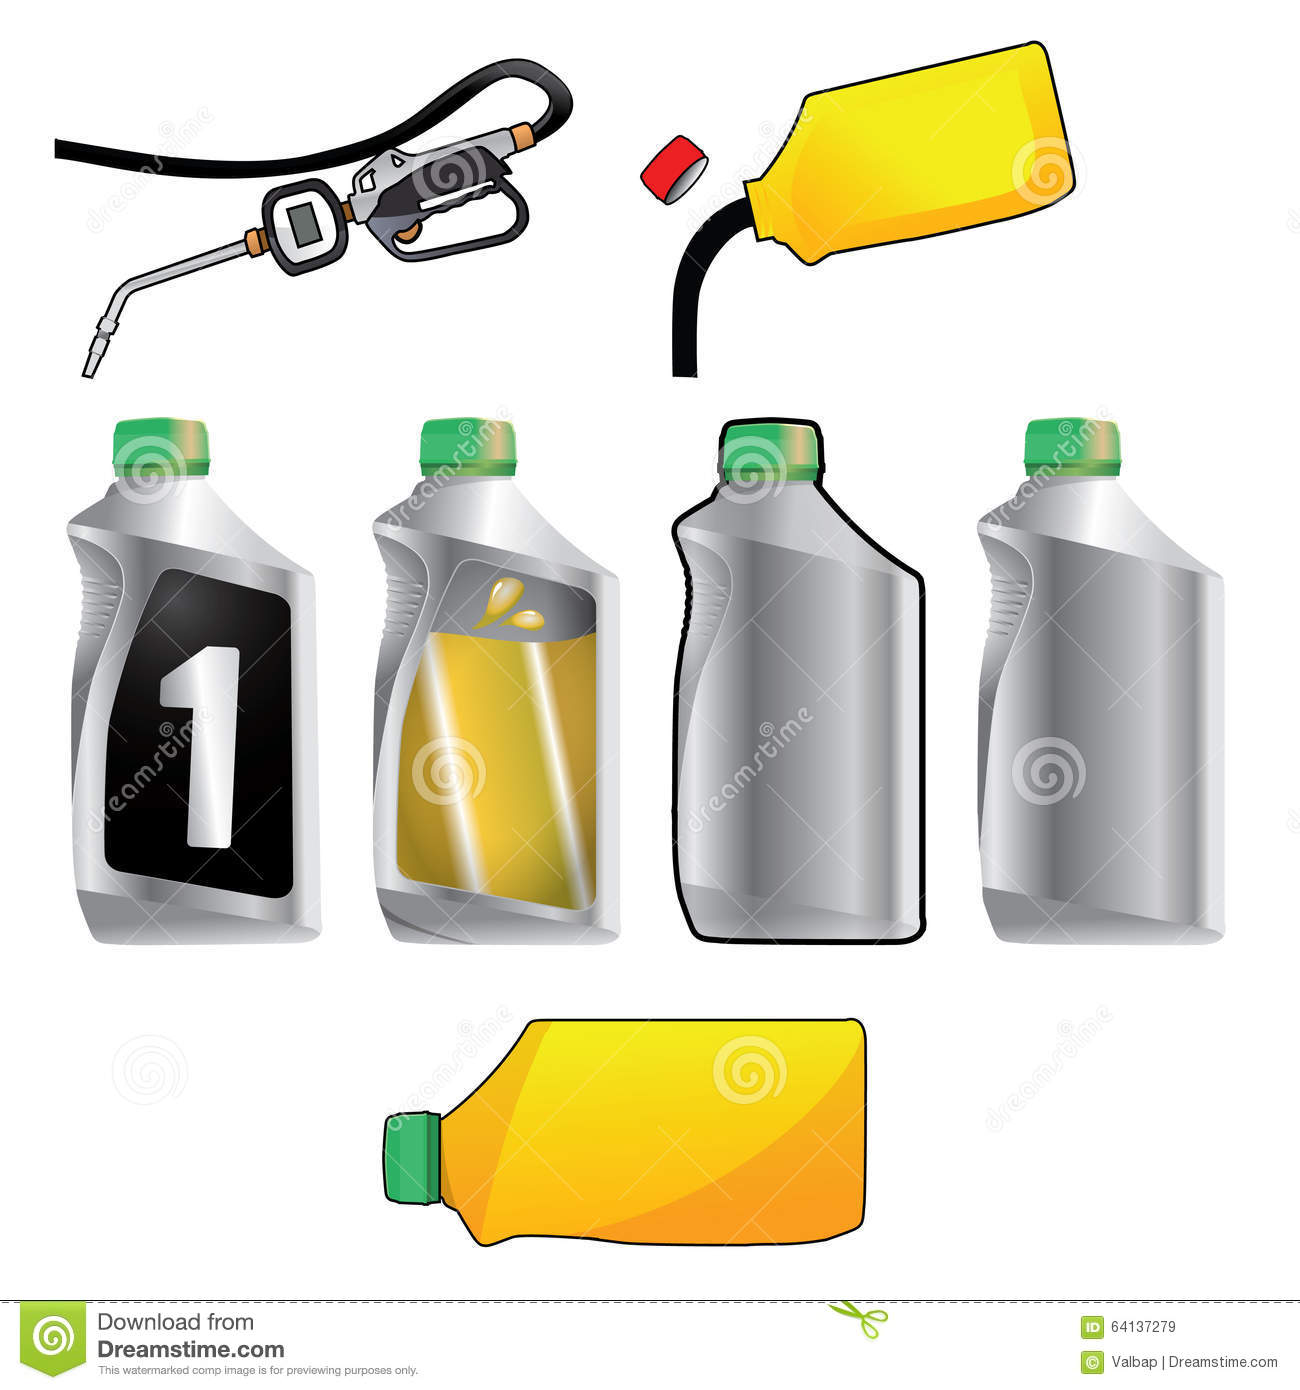 What oil to fill in the automatic transmission